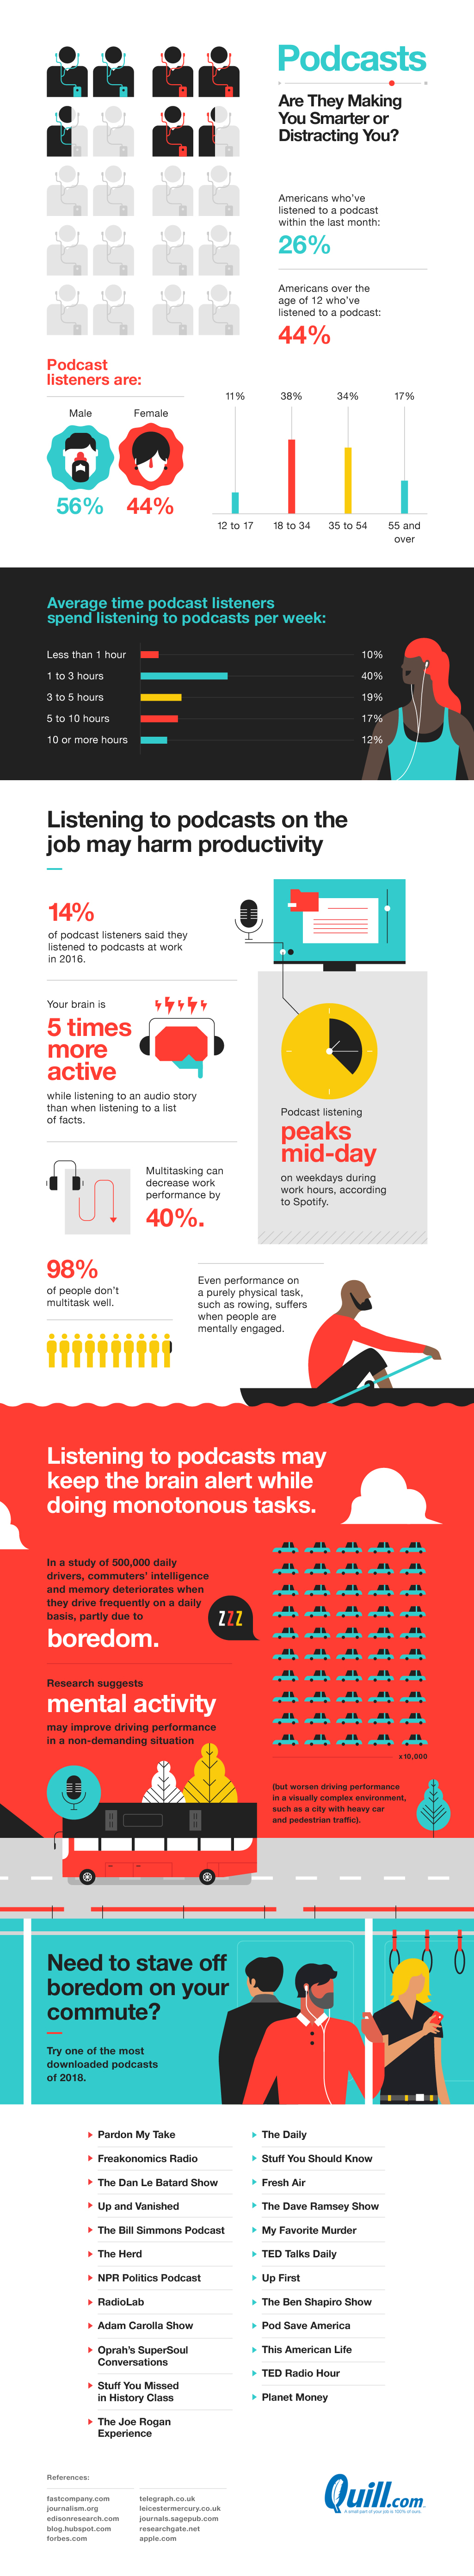 The Good and Bad of Podcasts: How Constant Listening Can Reduce Work Performance - Infographic